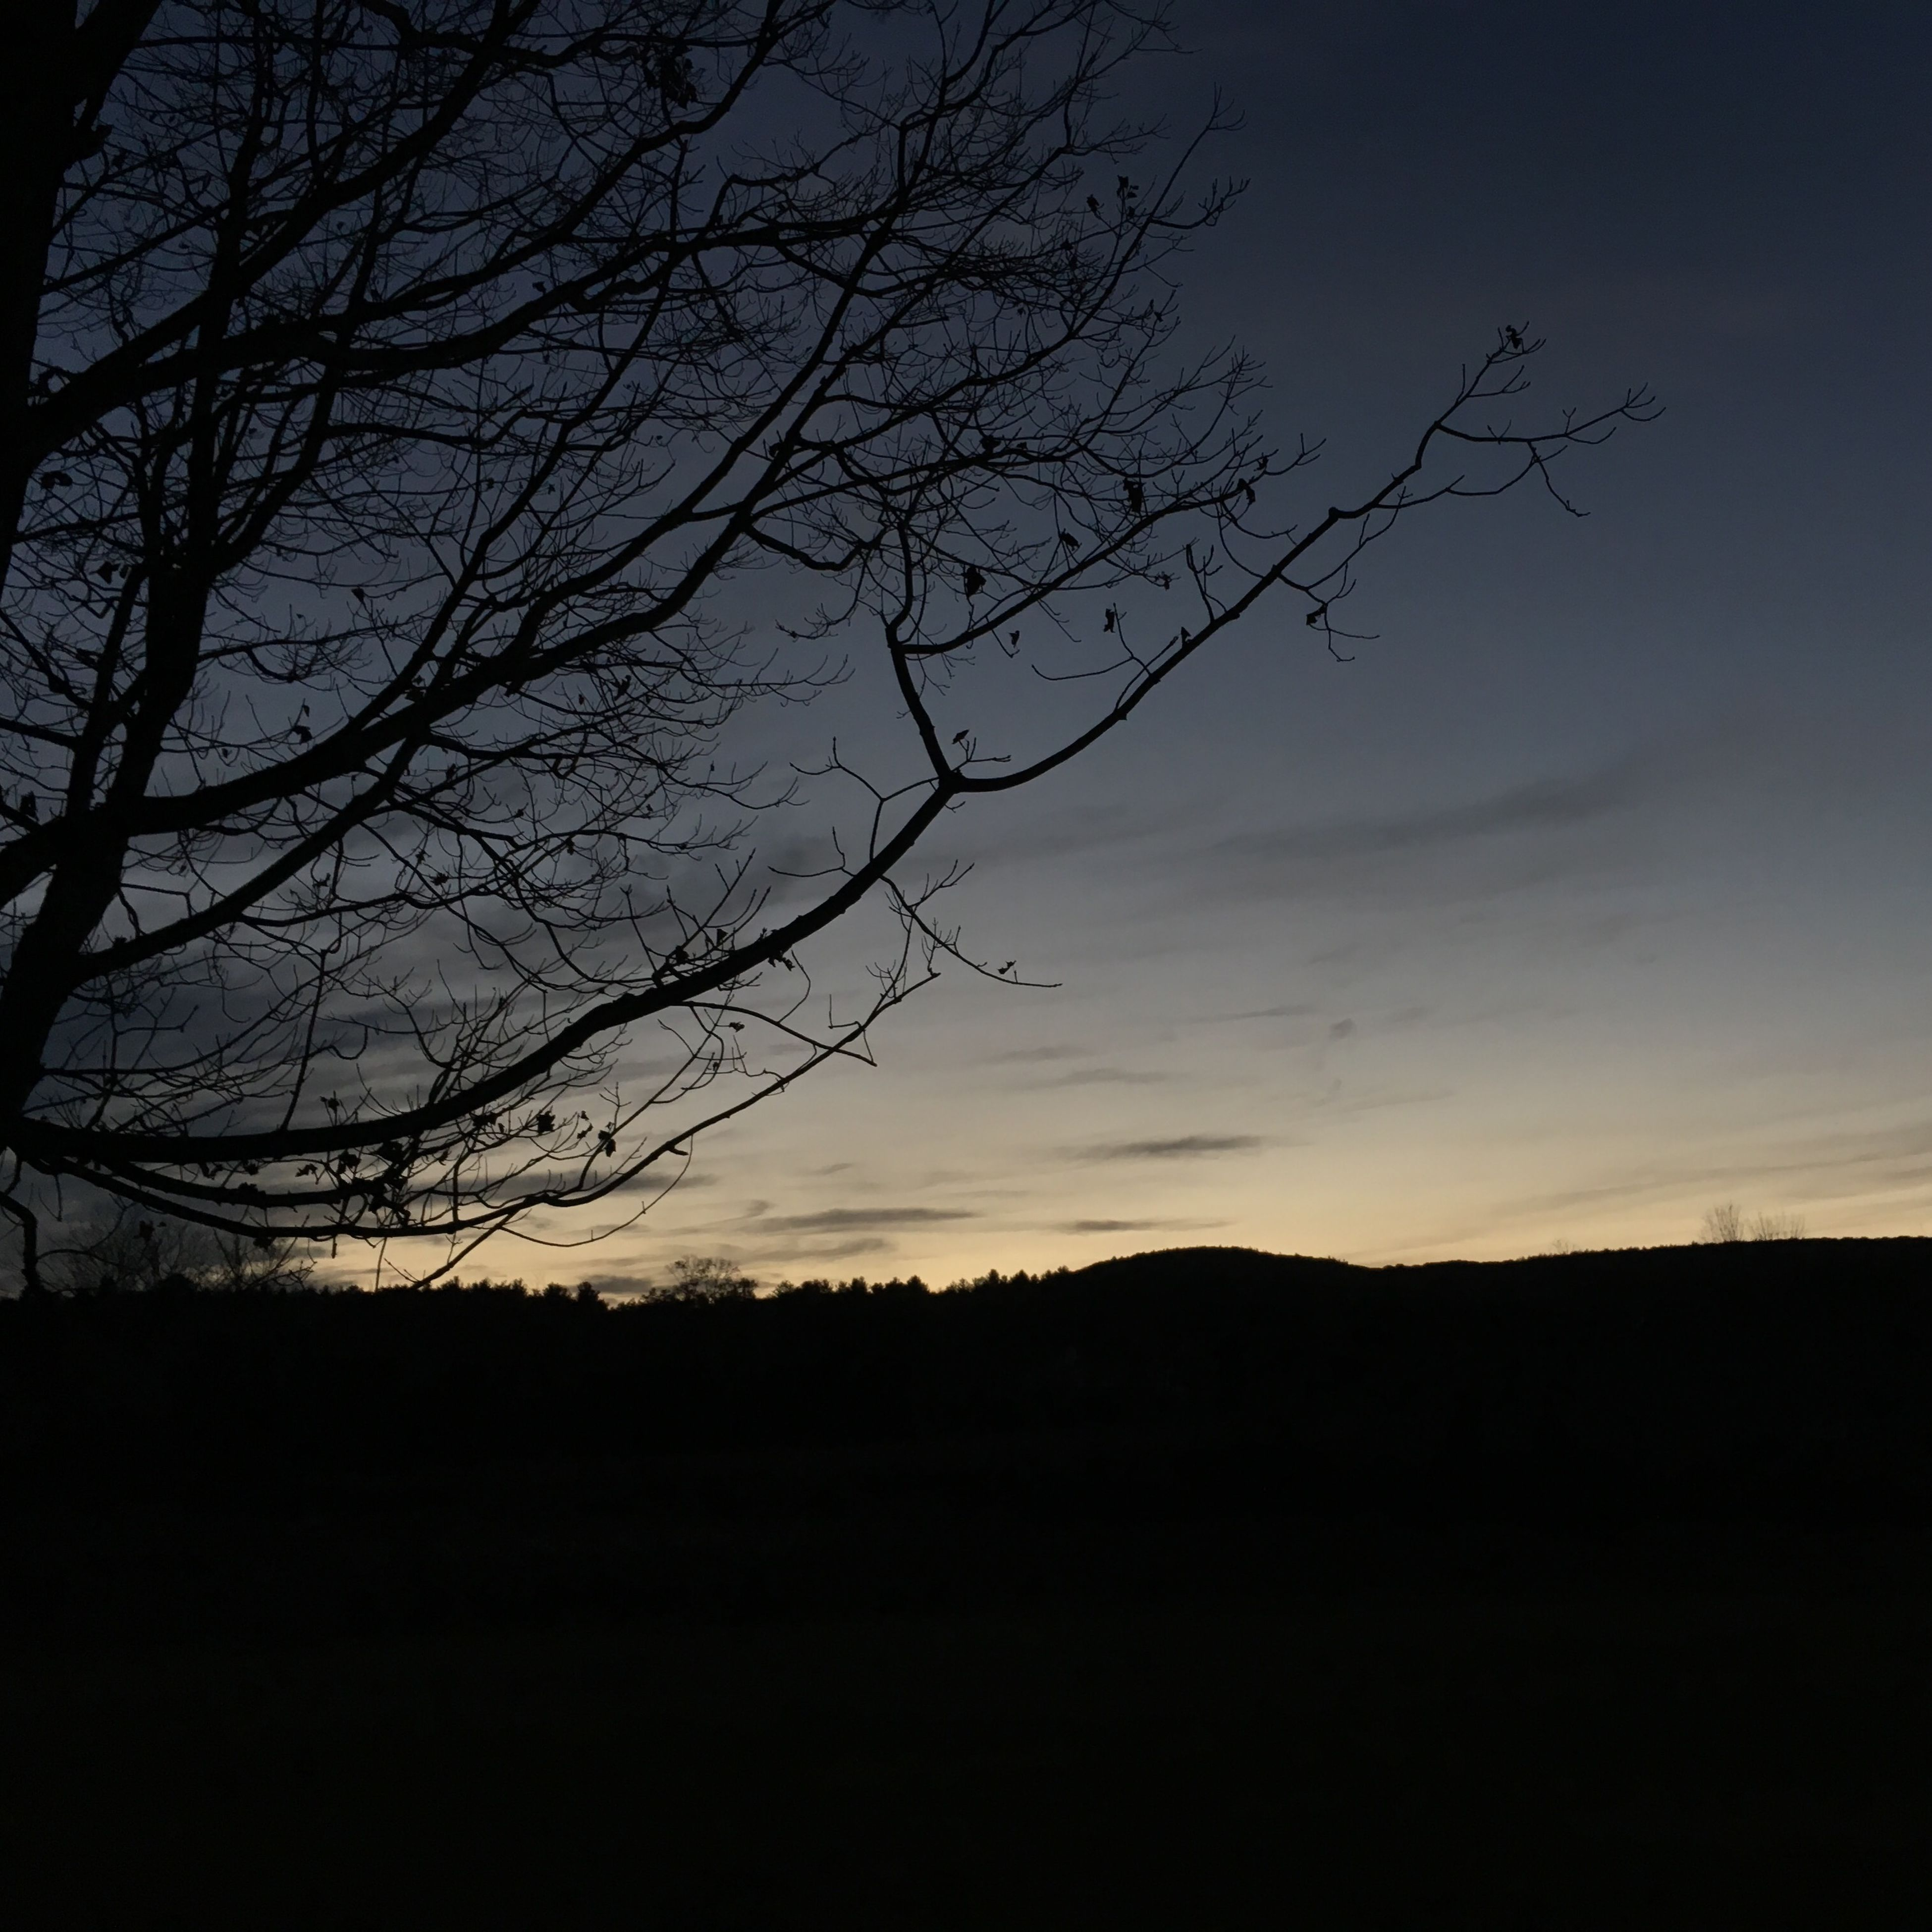 silhouette, sunset, bare tree, tranquility, tranquil scene, scenics, tree, beauty in nature, branch, sky, nature, landscape, idyllic, dark, dusk, outline, orange color, outdoors, no people, non-urban scene